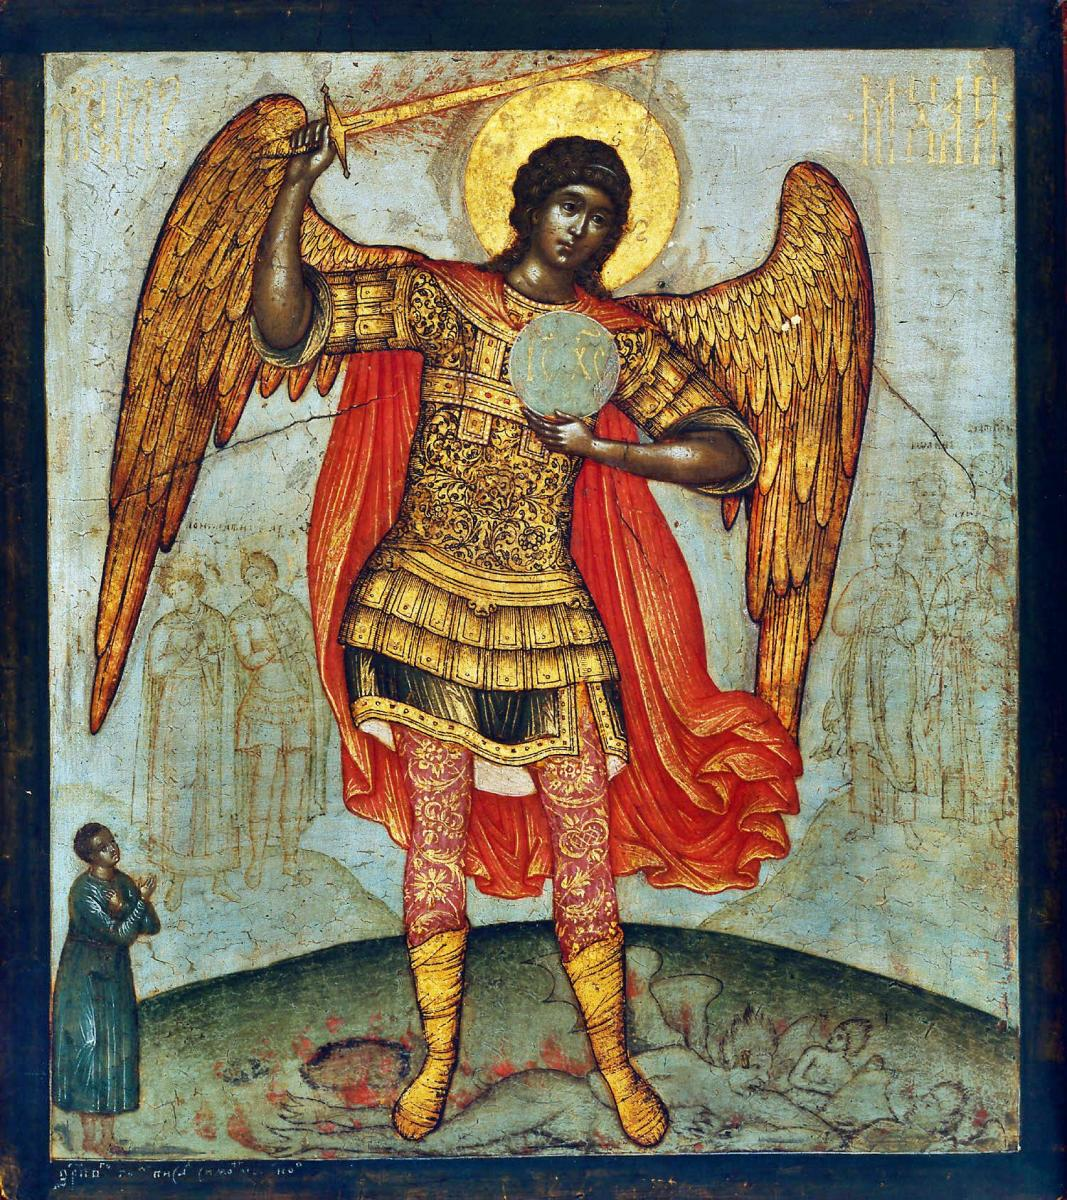 Michael the Archangel tramples the devil underfoot in a 1676 painting